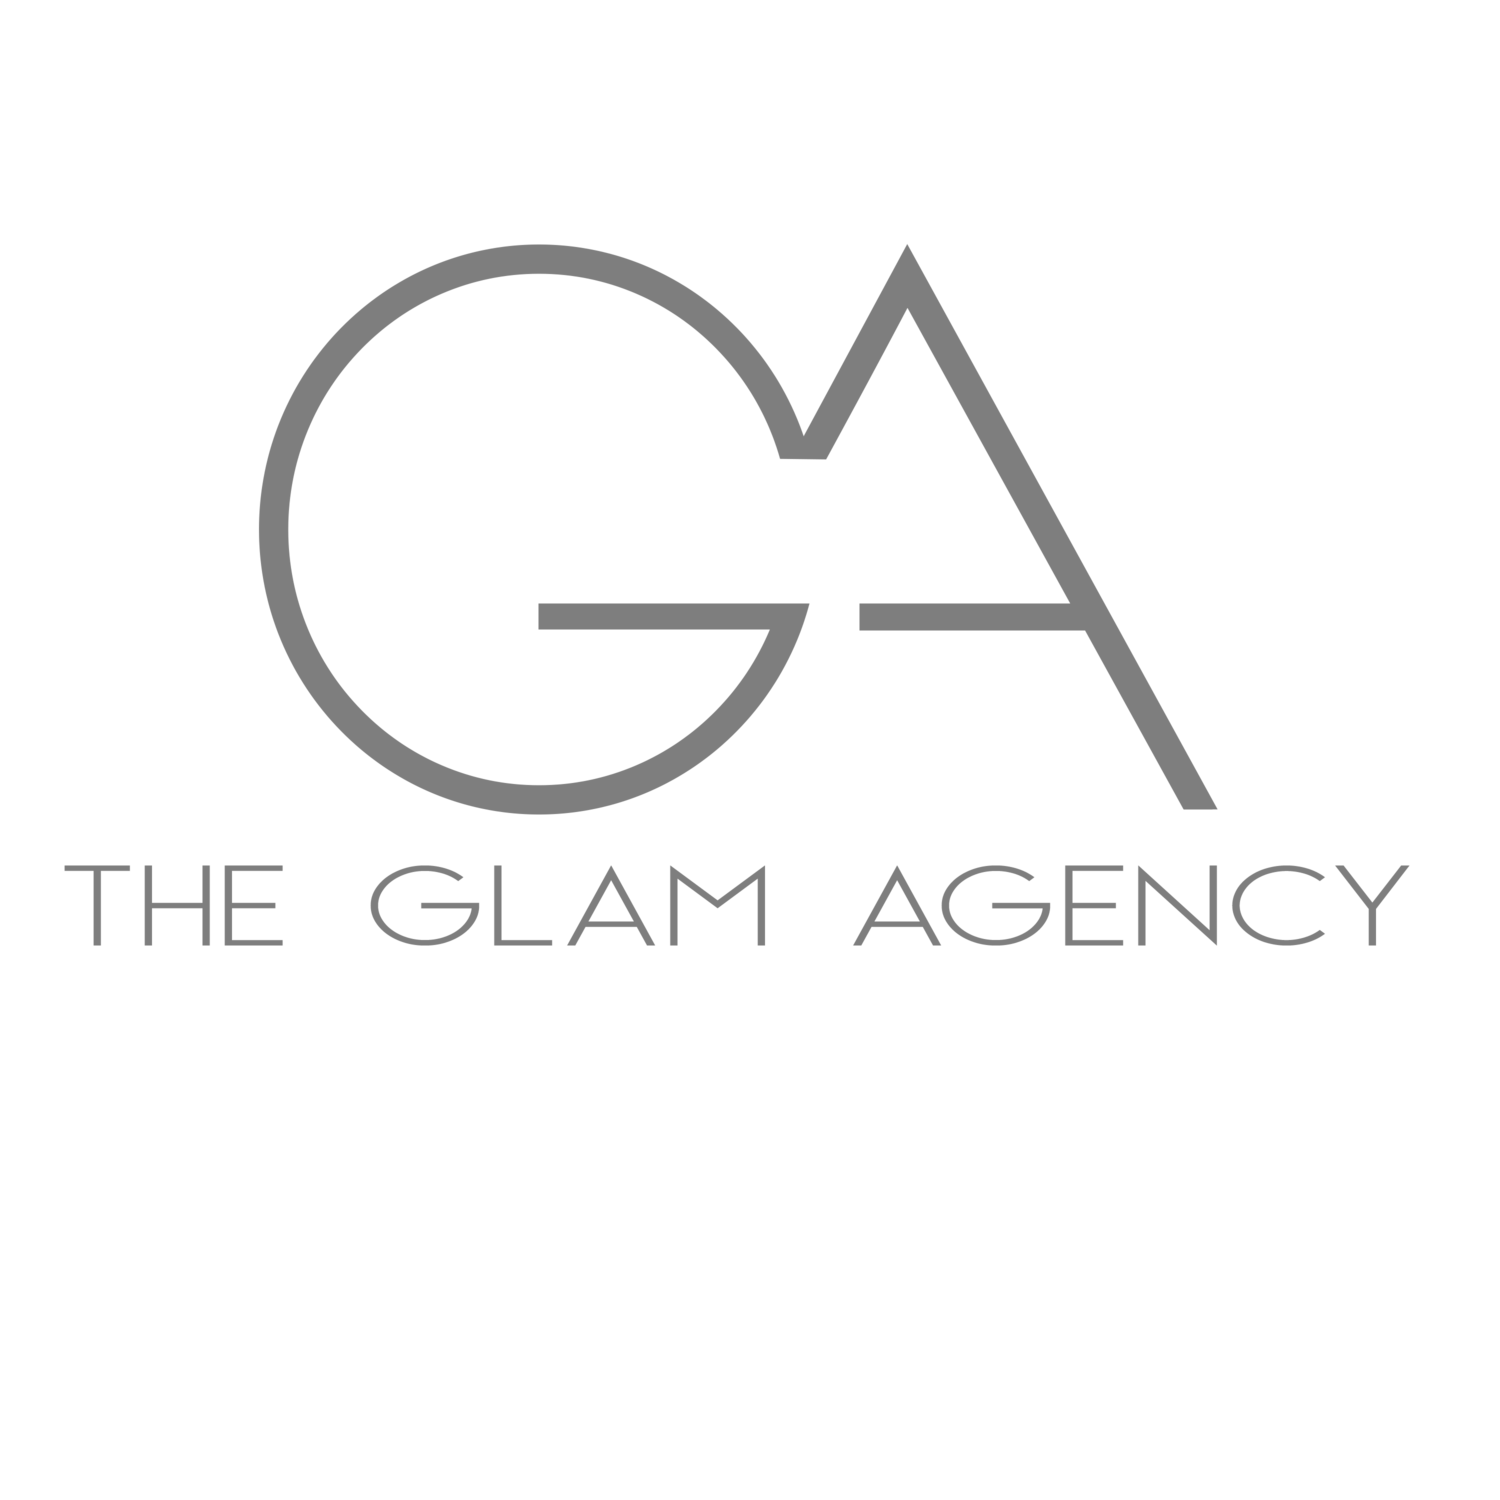 The GLAM Agency